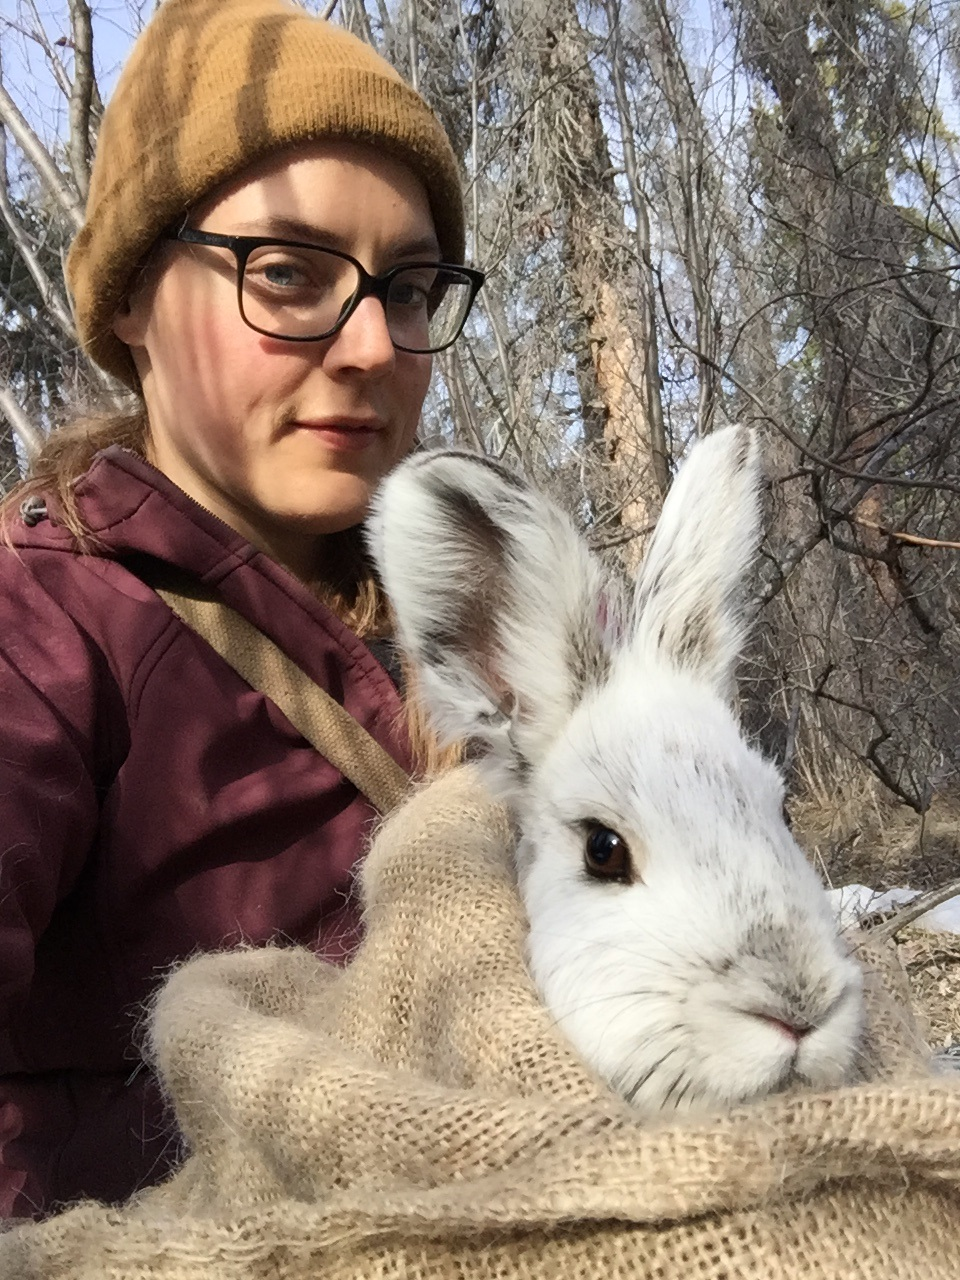 Ally releasing a snowshoe hare. Photo credit: Ally's iPhone.